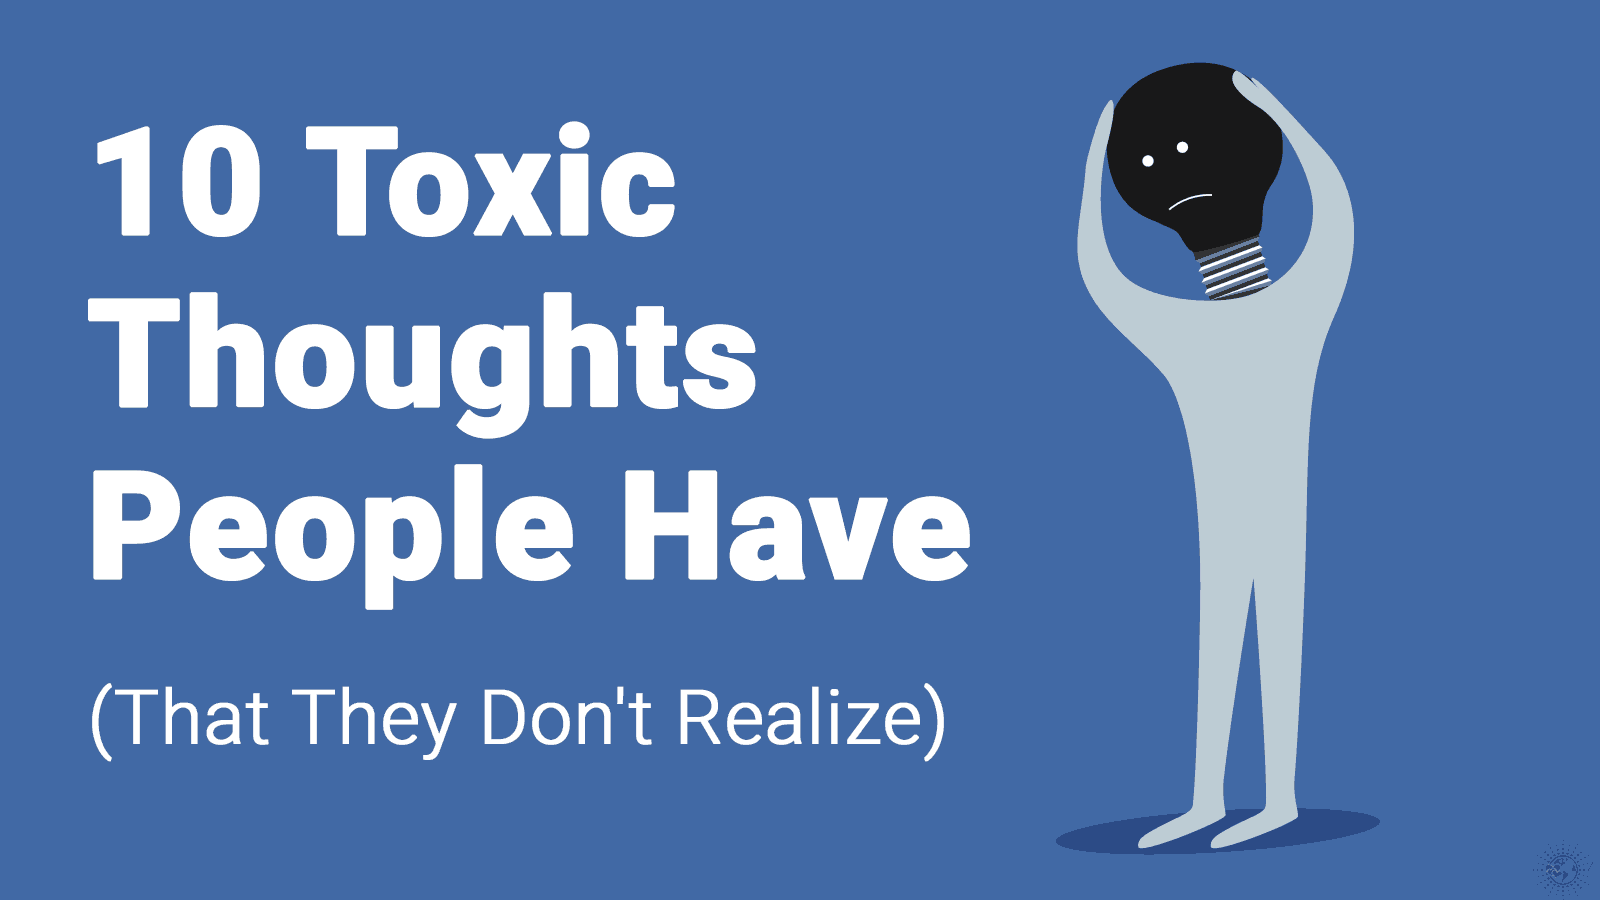 10 Toxic Thoughts People Have (That They Don't Realize)